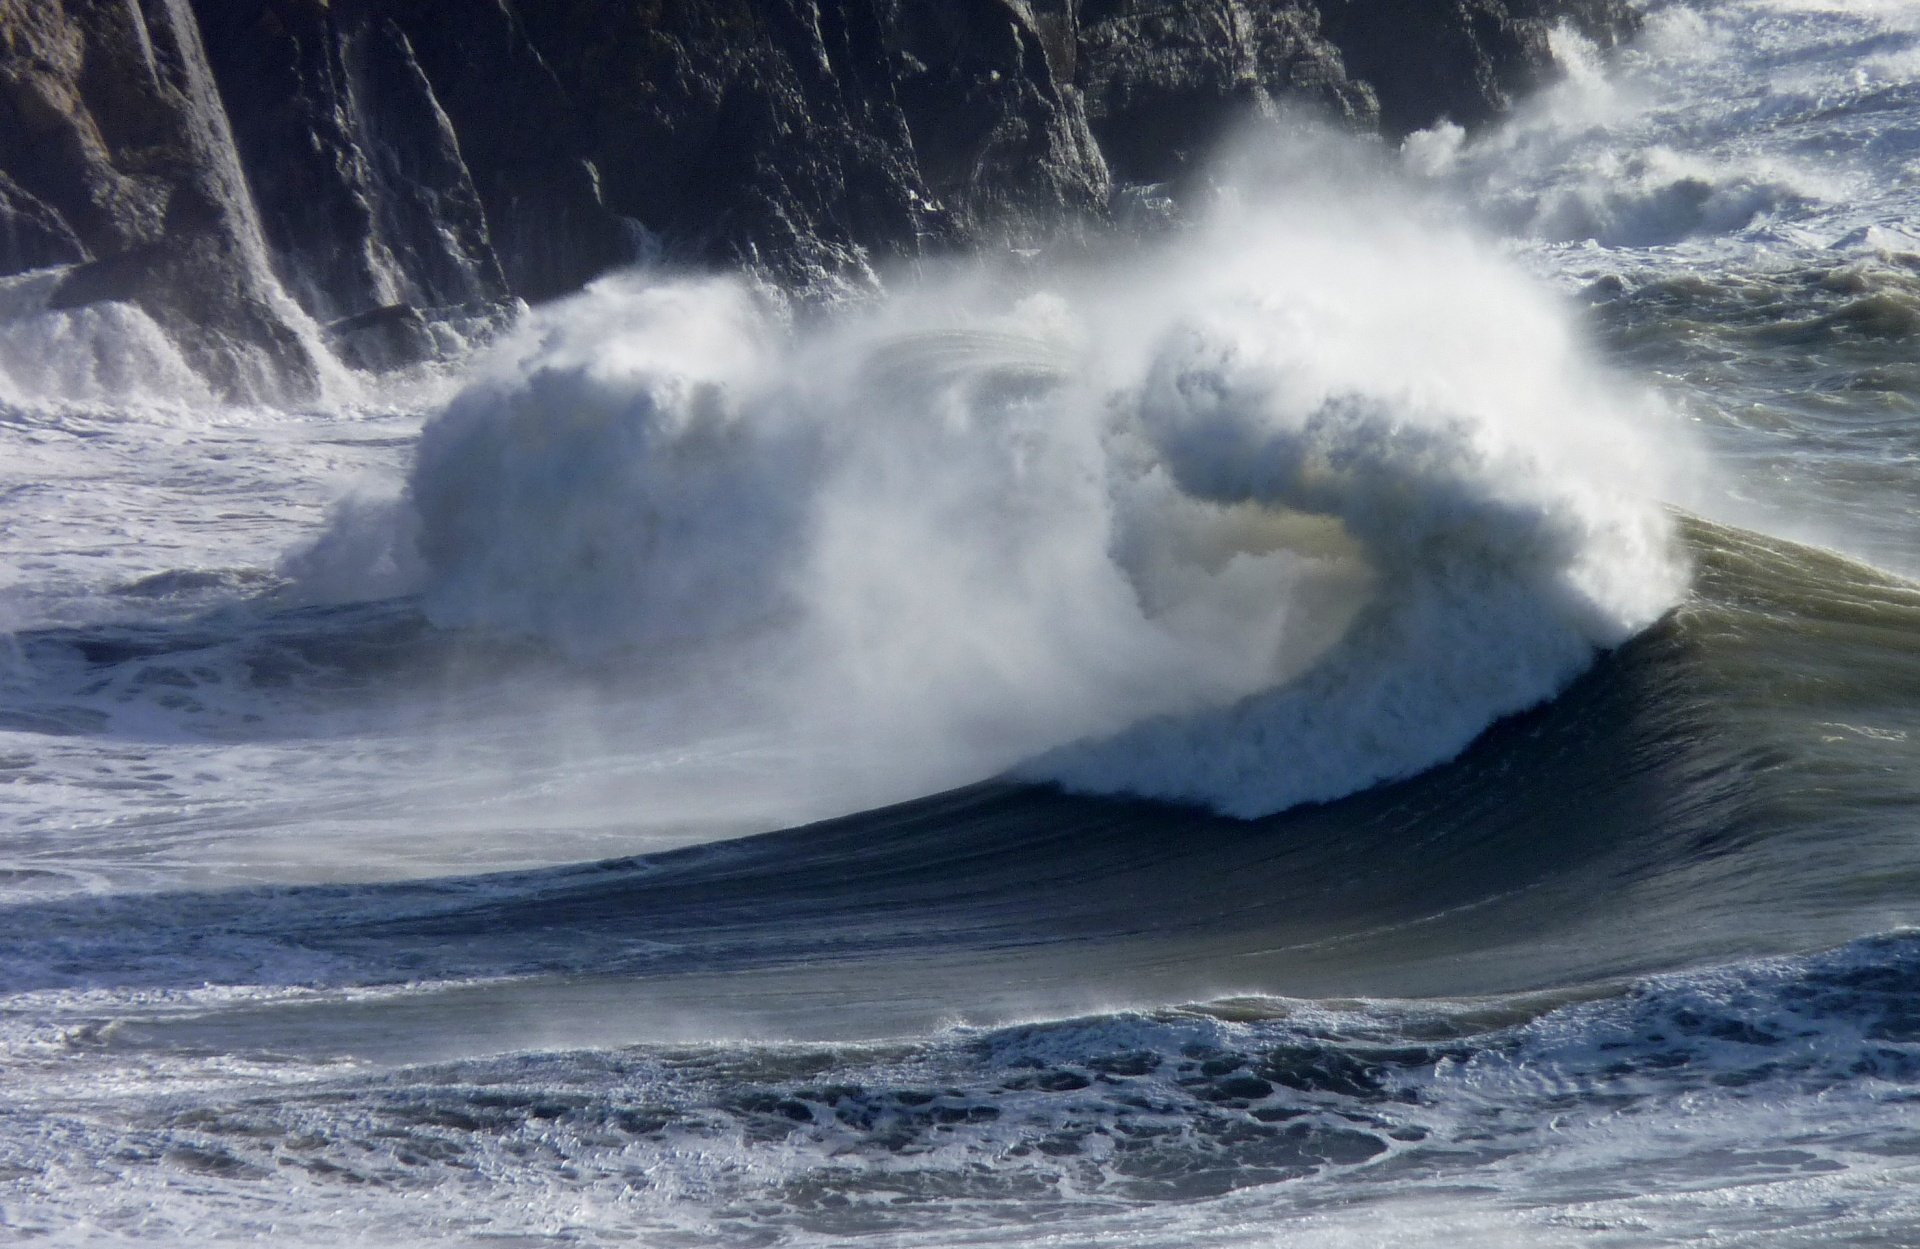 Mark Green's photo of Hells Mouth (Porth Neigwl)